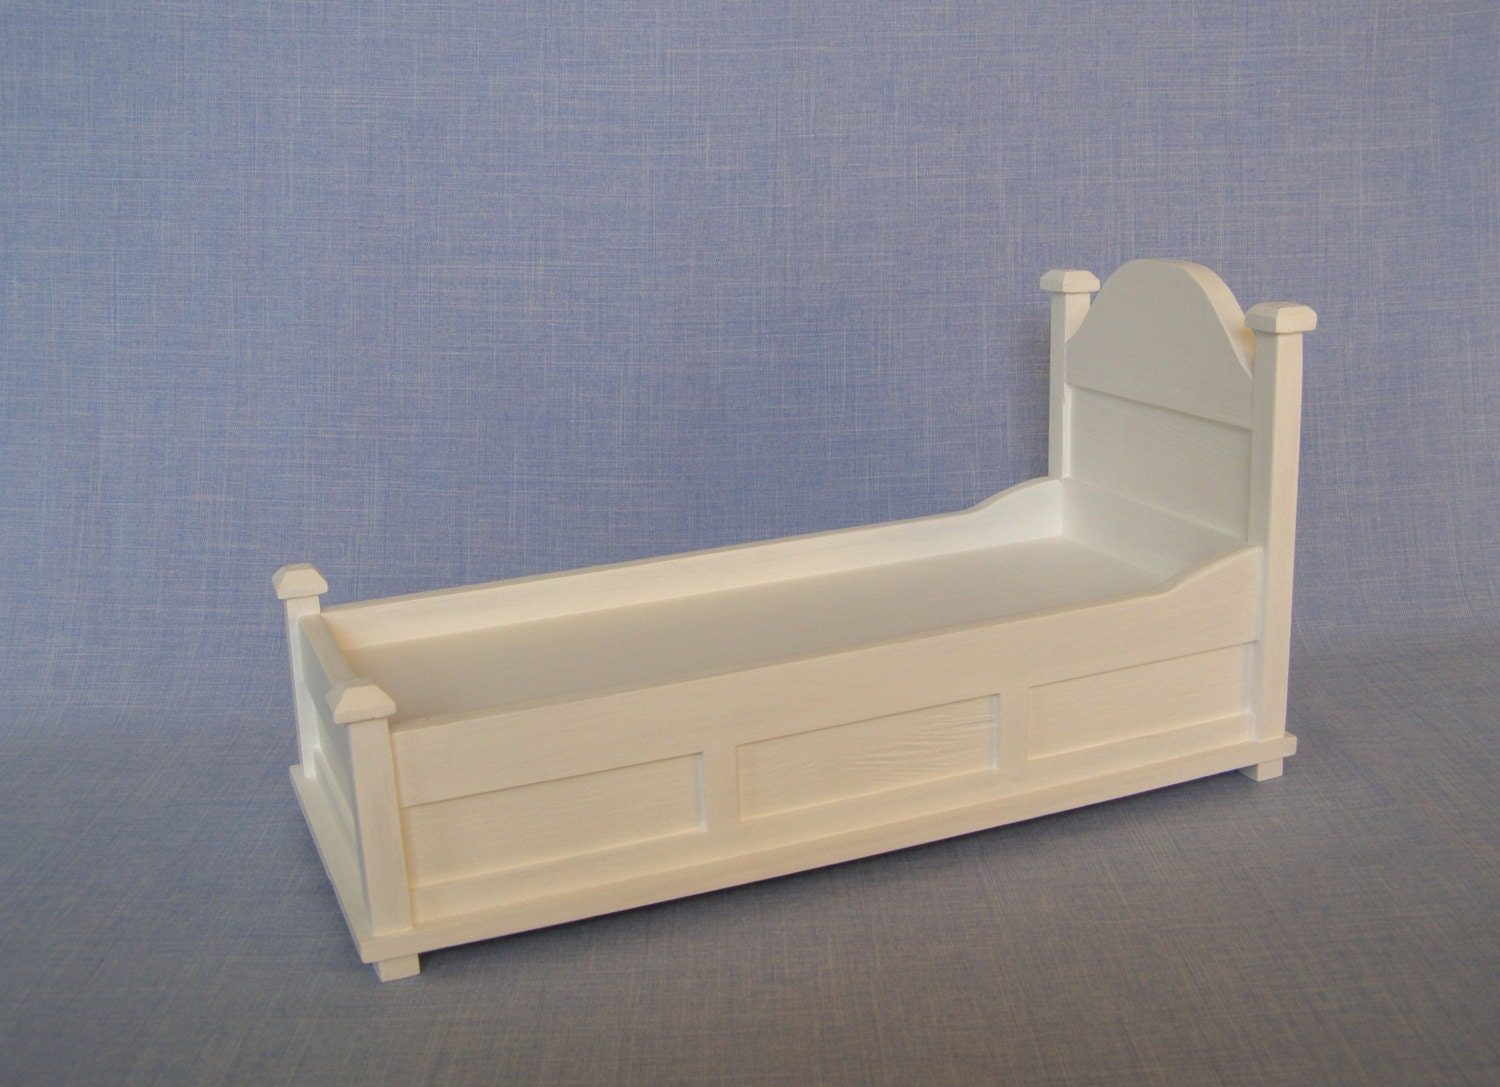 Single Bed For 12 Inch Doll Dolls/ 1:6 Scale Bed/ White Modern